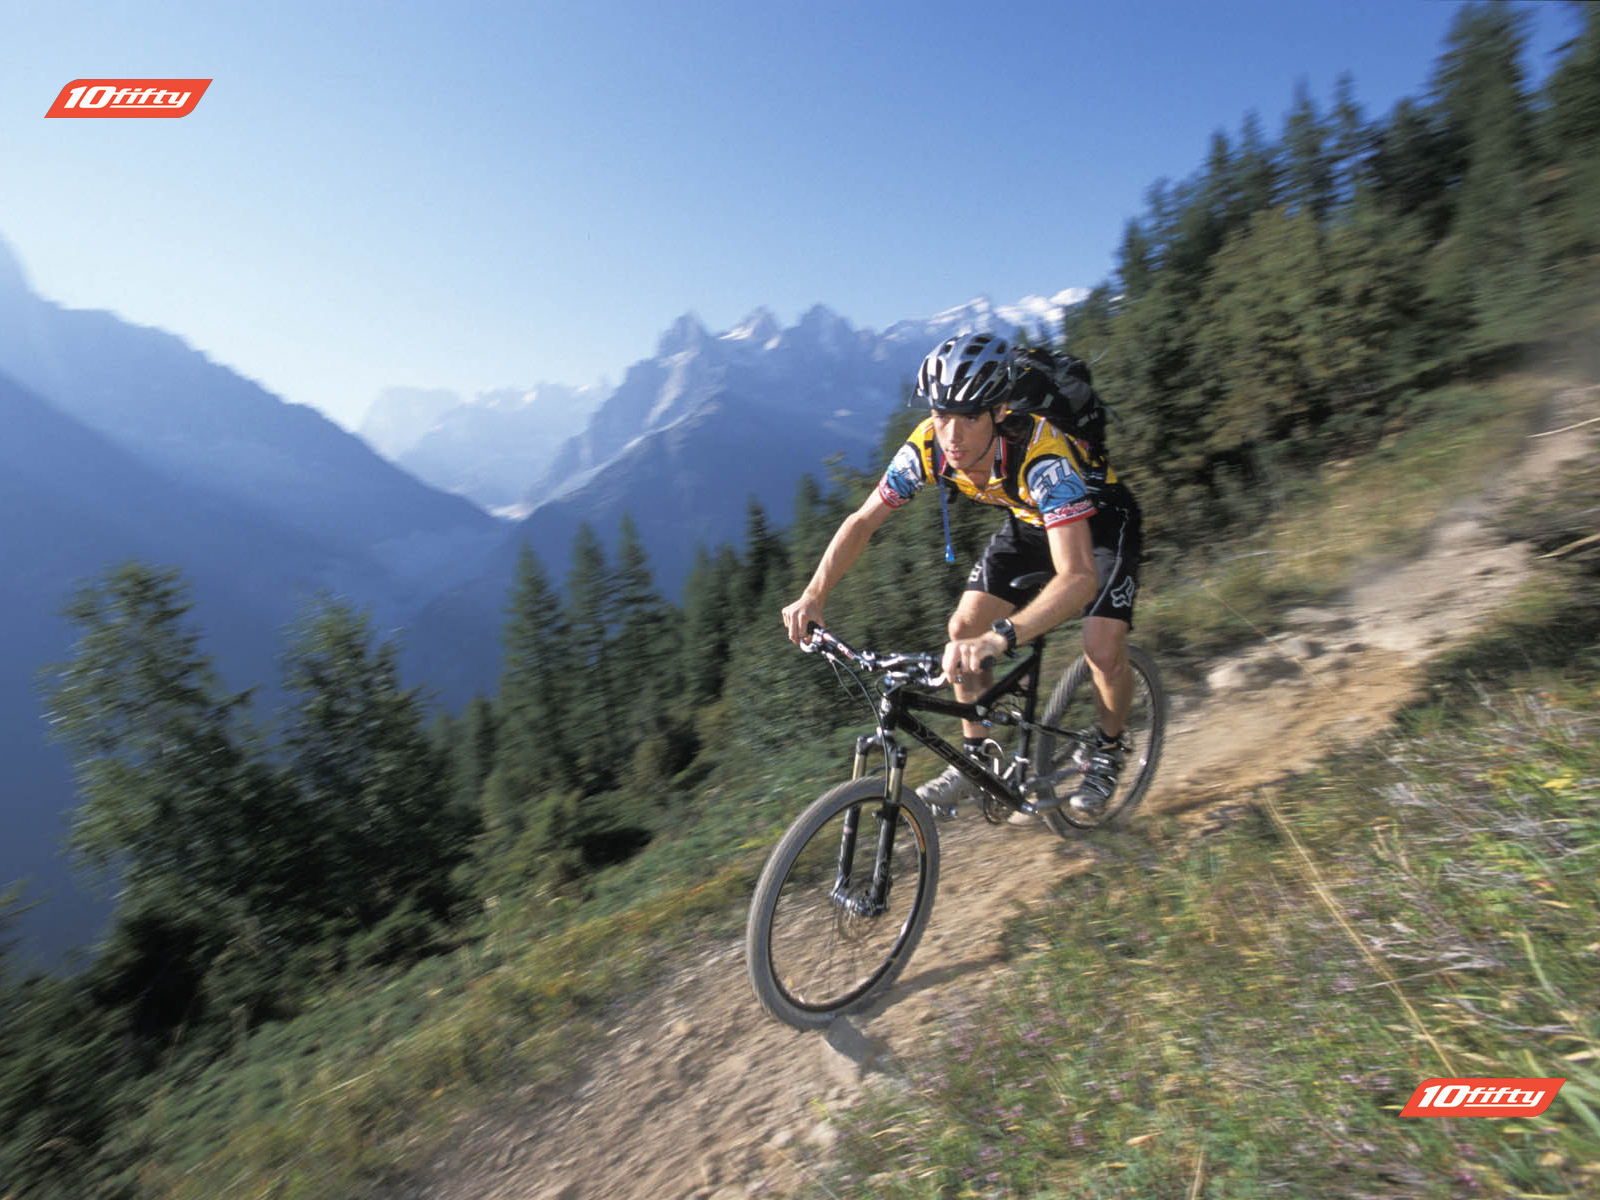 Mountain Bike Holidays, Chamonix - France and USA from 10fifty